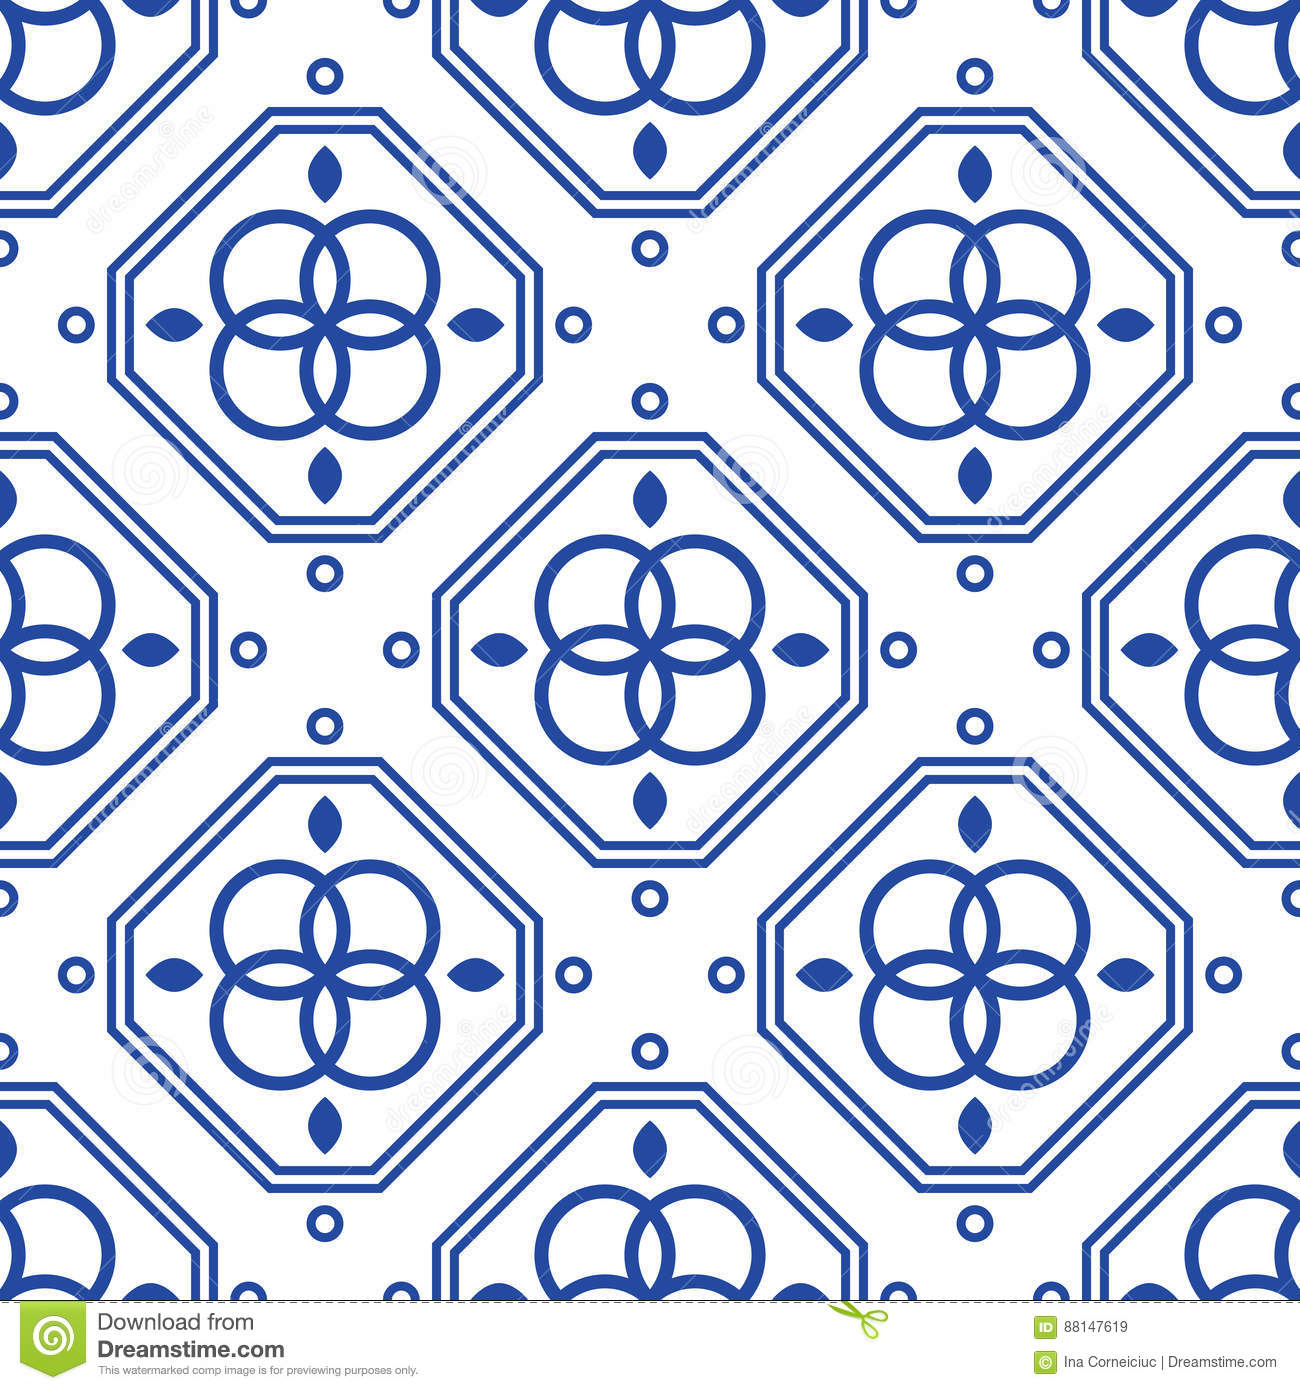 Blue And White Geometric Mediterranean Seamless Tile Pattern. Stock ...